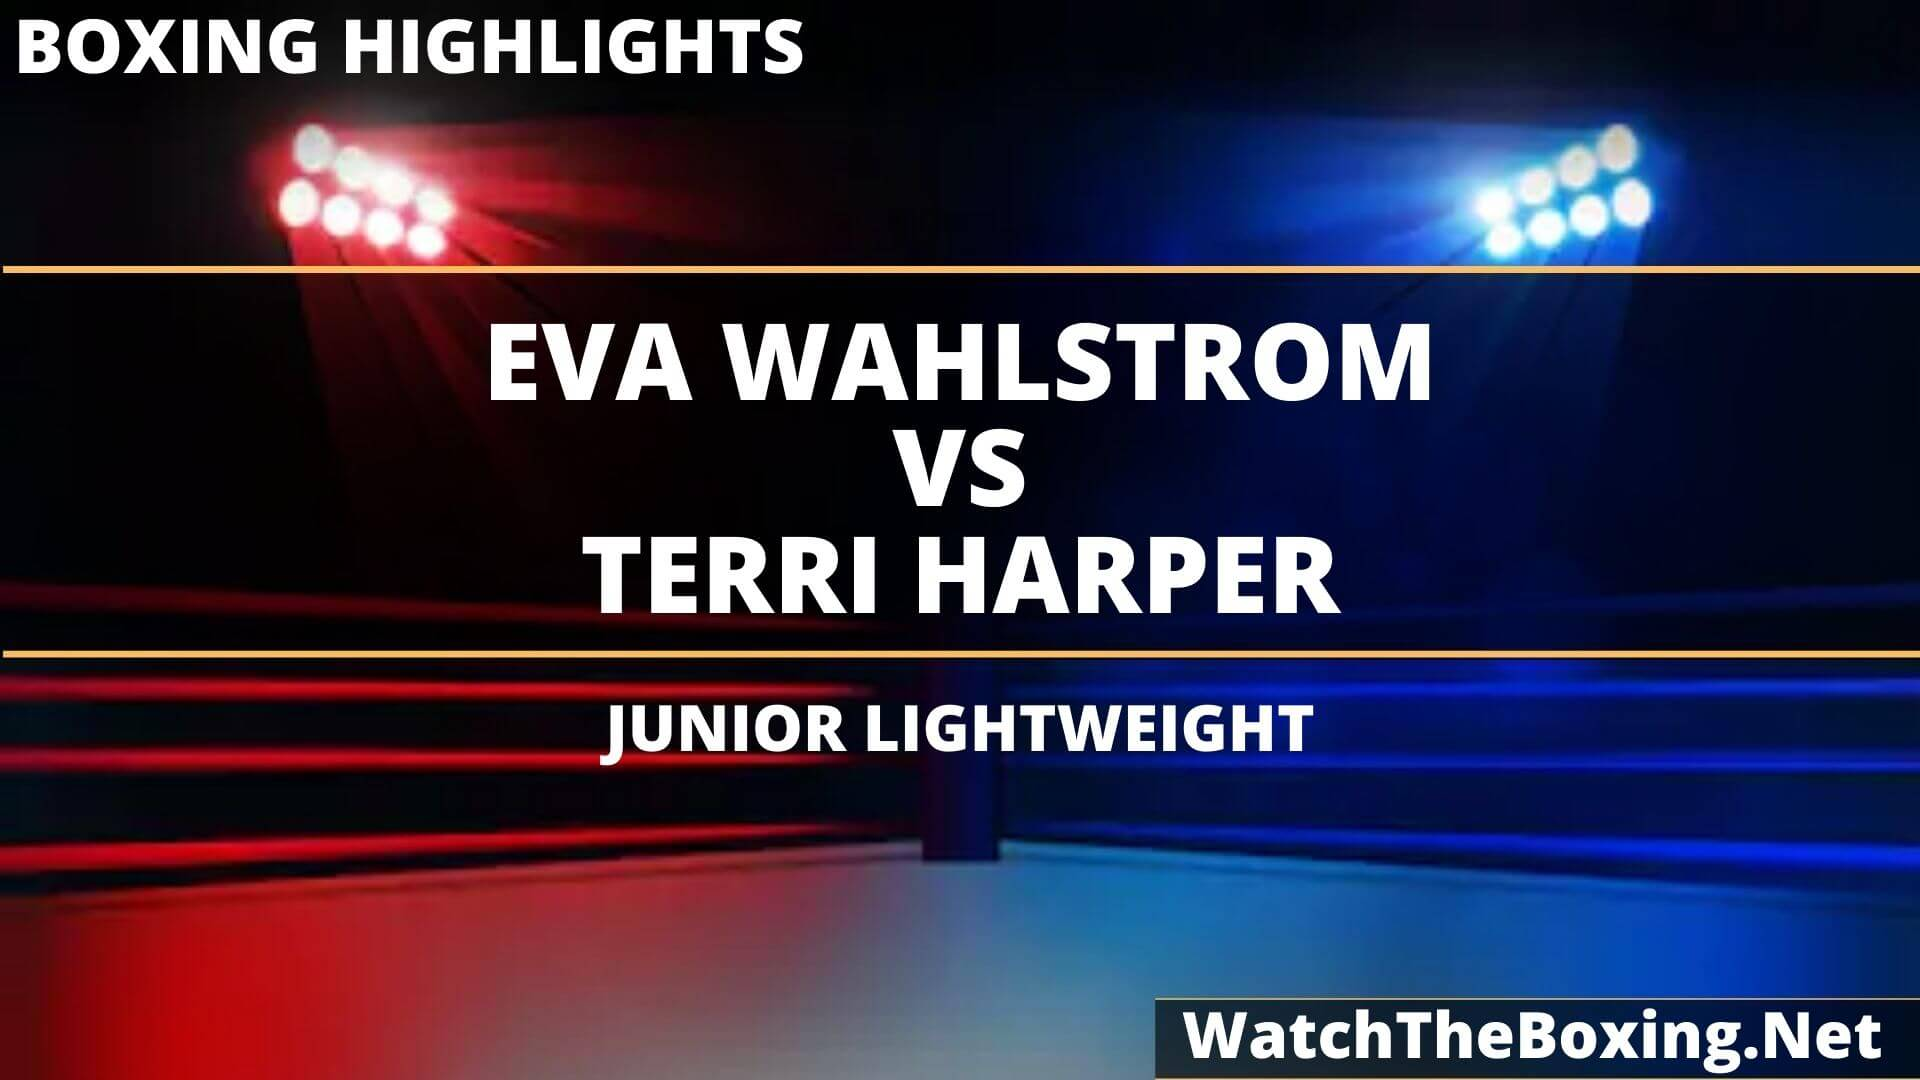 Eva Wahlstrom Vs Terri Harper Highlights 2020